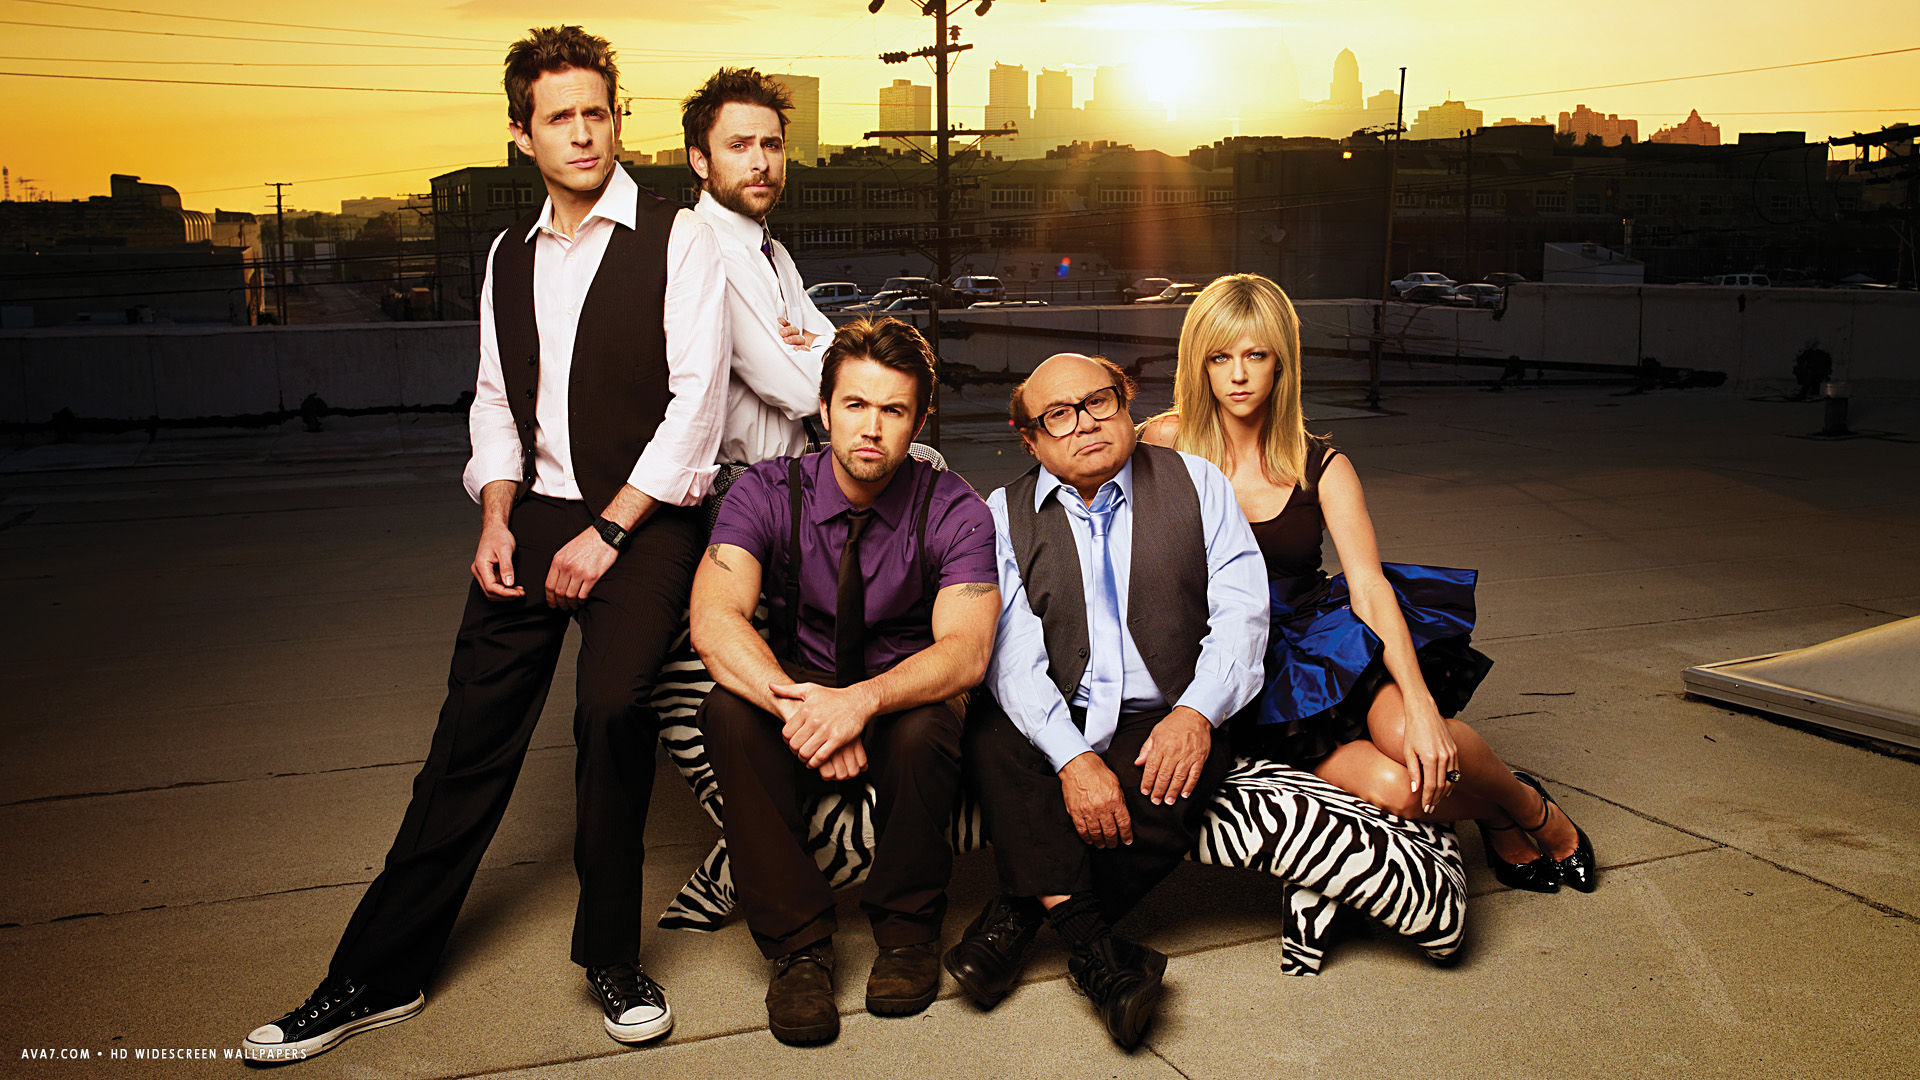 Its Always Sunny In Philadelphia Tv Series Show Hd Widescreen